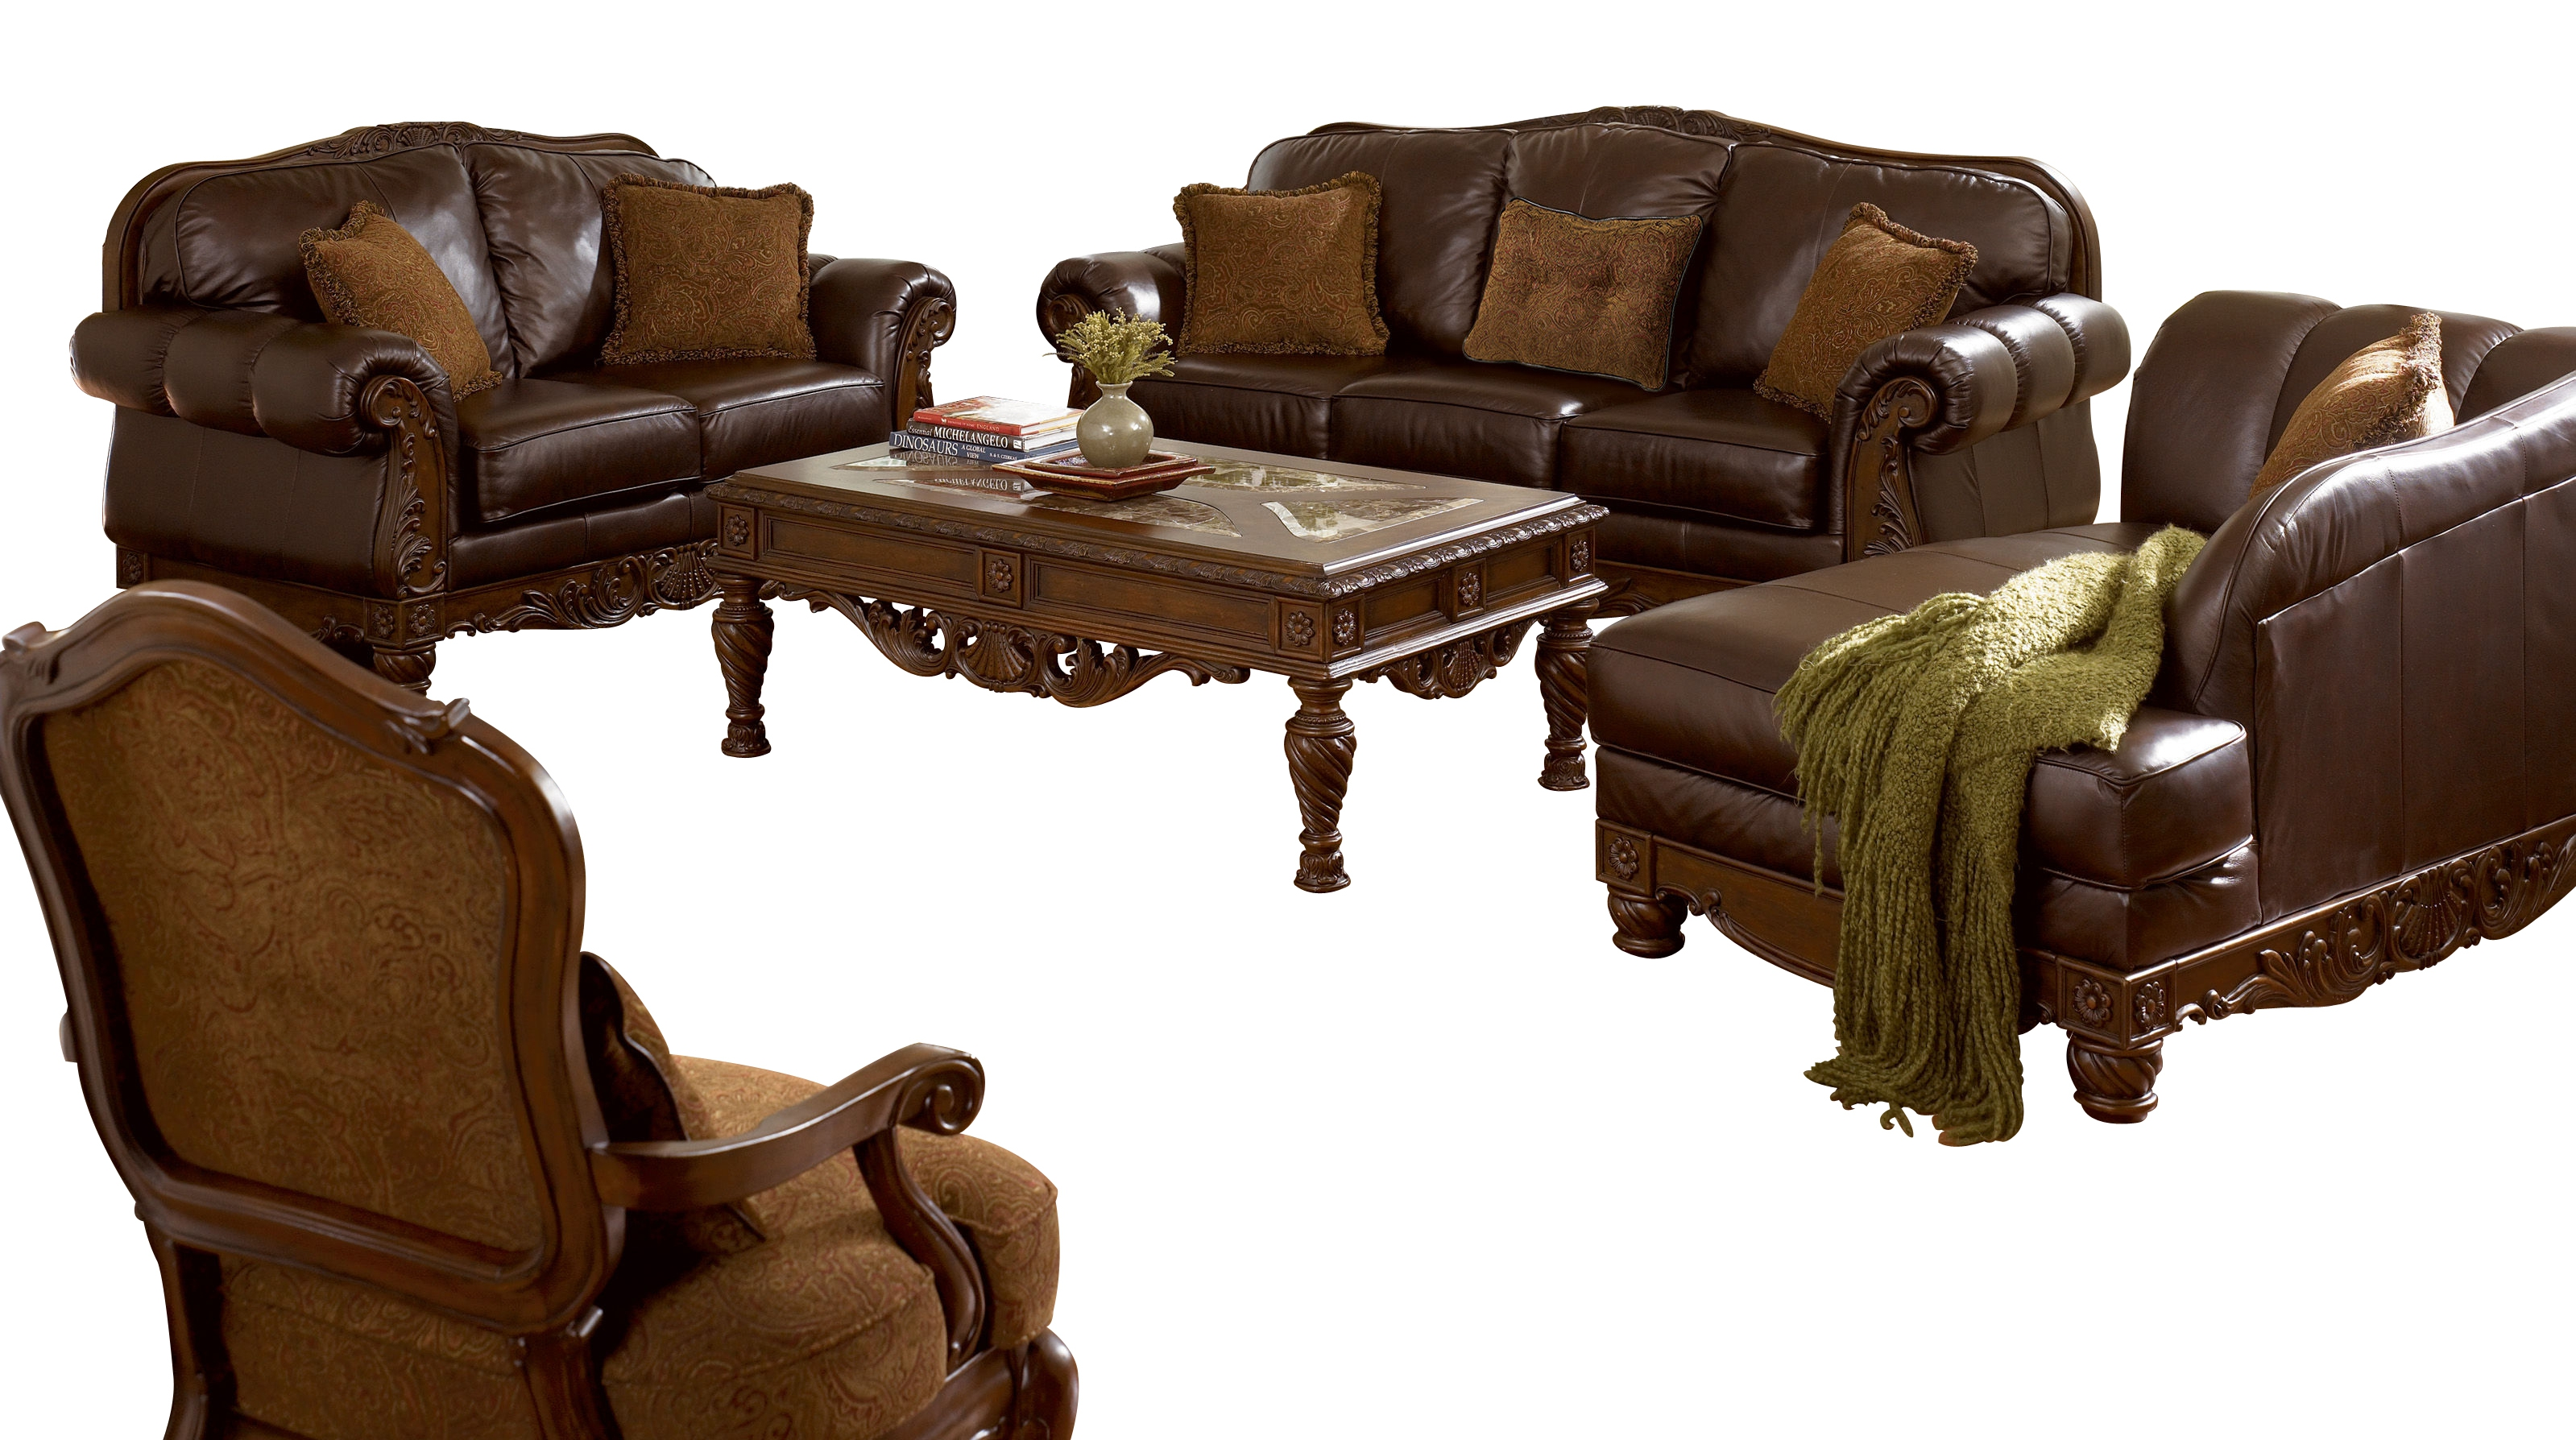 ashley furniture north shore 3pc living room set the classy home rh theclassyhome com north shore living room set by ashley furniture north shore dark brown living room set